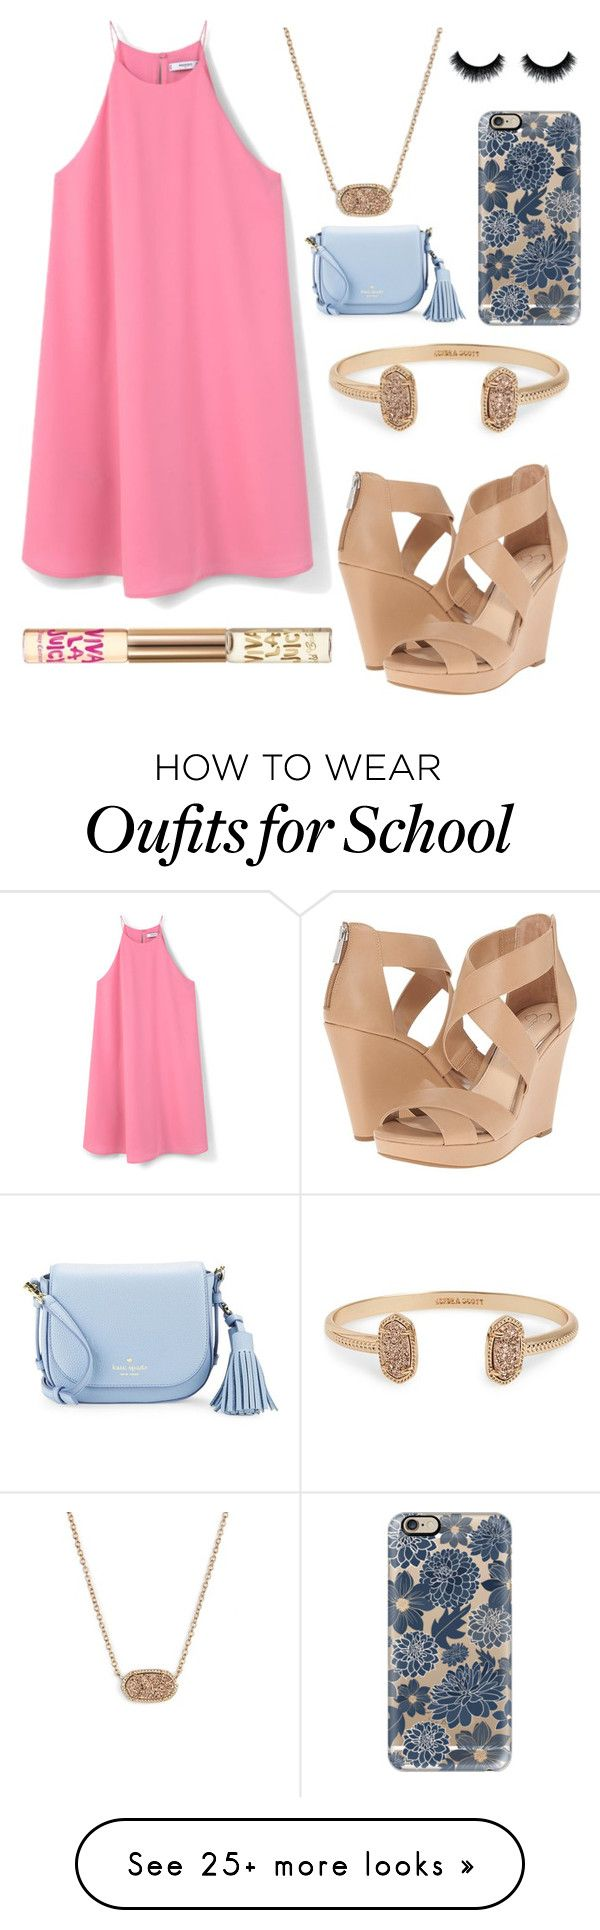 """Last week of school"" by jadenriley21 on Polyvore featuring Jessica Simpson, MANGO, Kendra Scott, Casetify, Kate Spade and Juicy Couture"